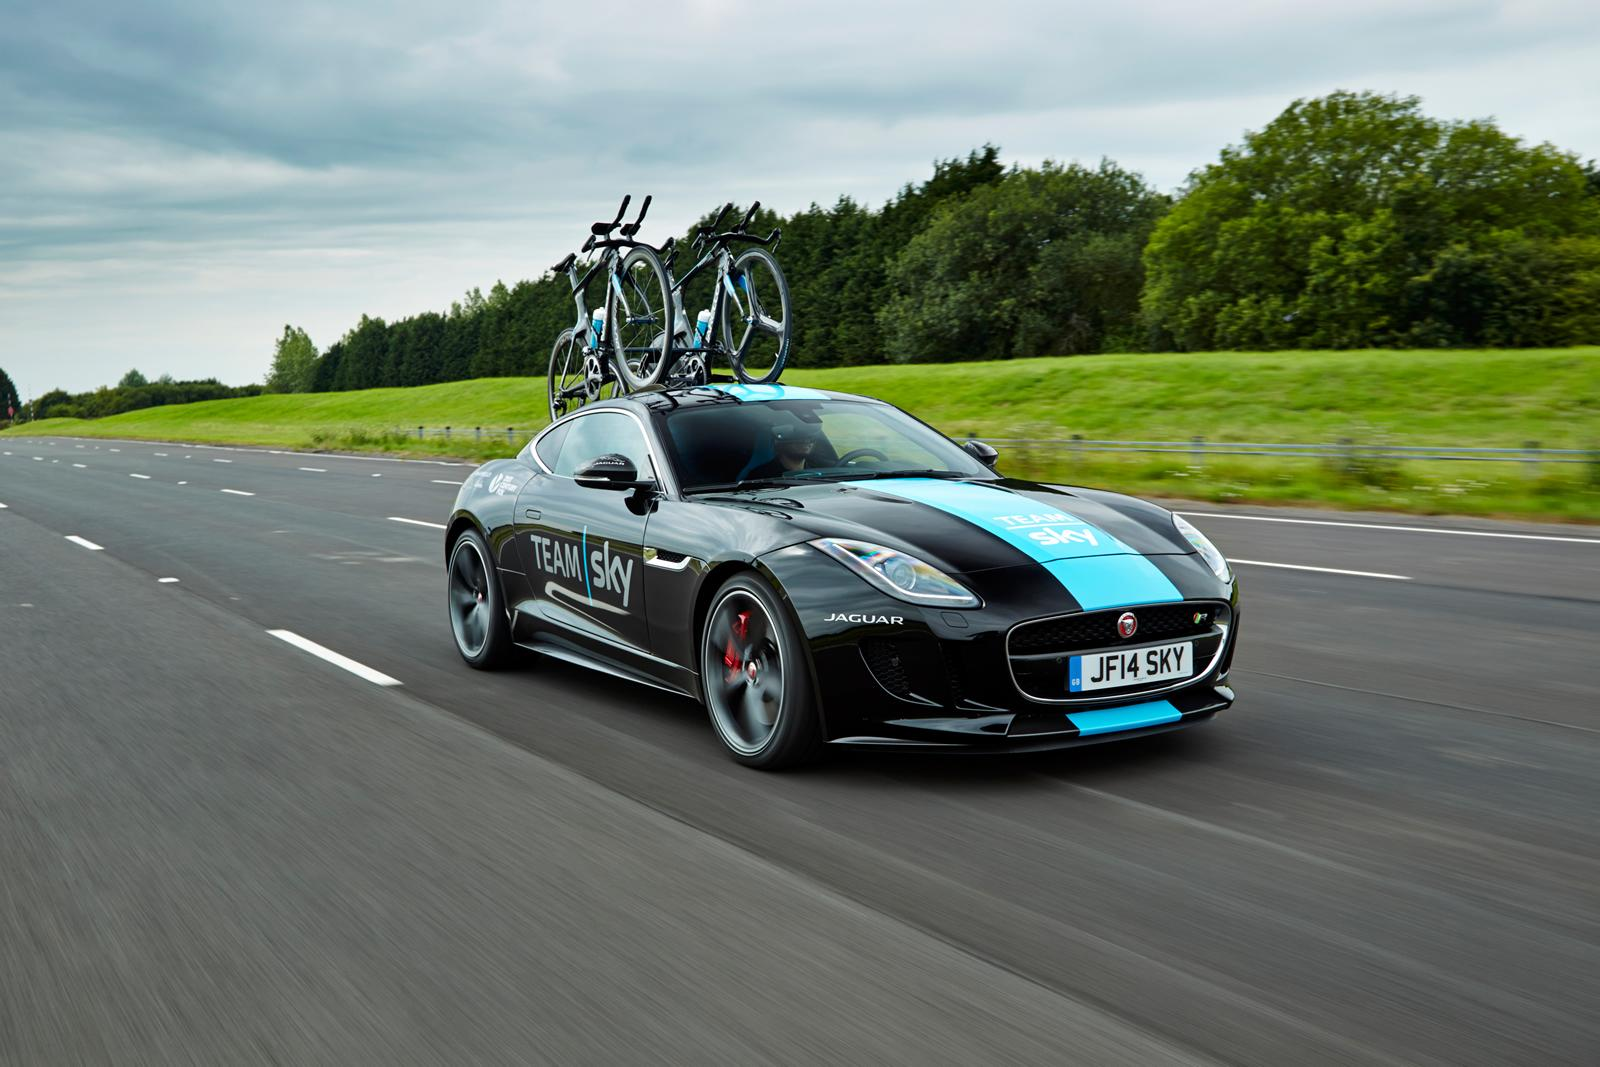 Trunk Mount Bike Rack >> Jaguar F-Type Gets Carbon Fiber Bike Rack for Tour de France [Video] - autoevolution